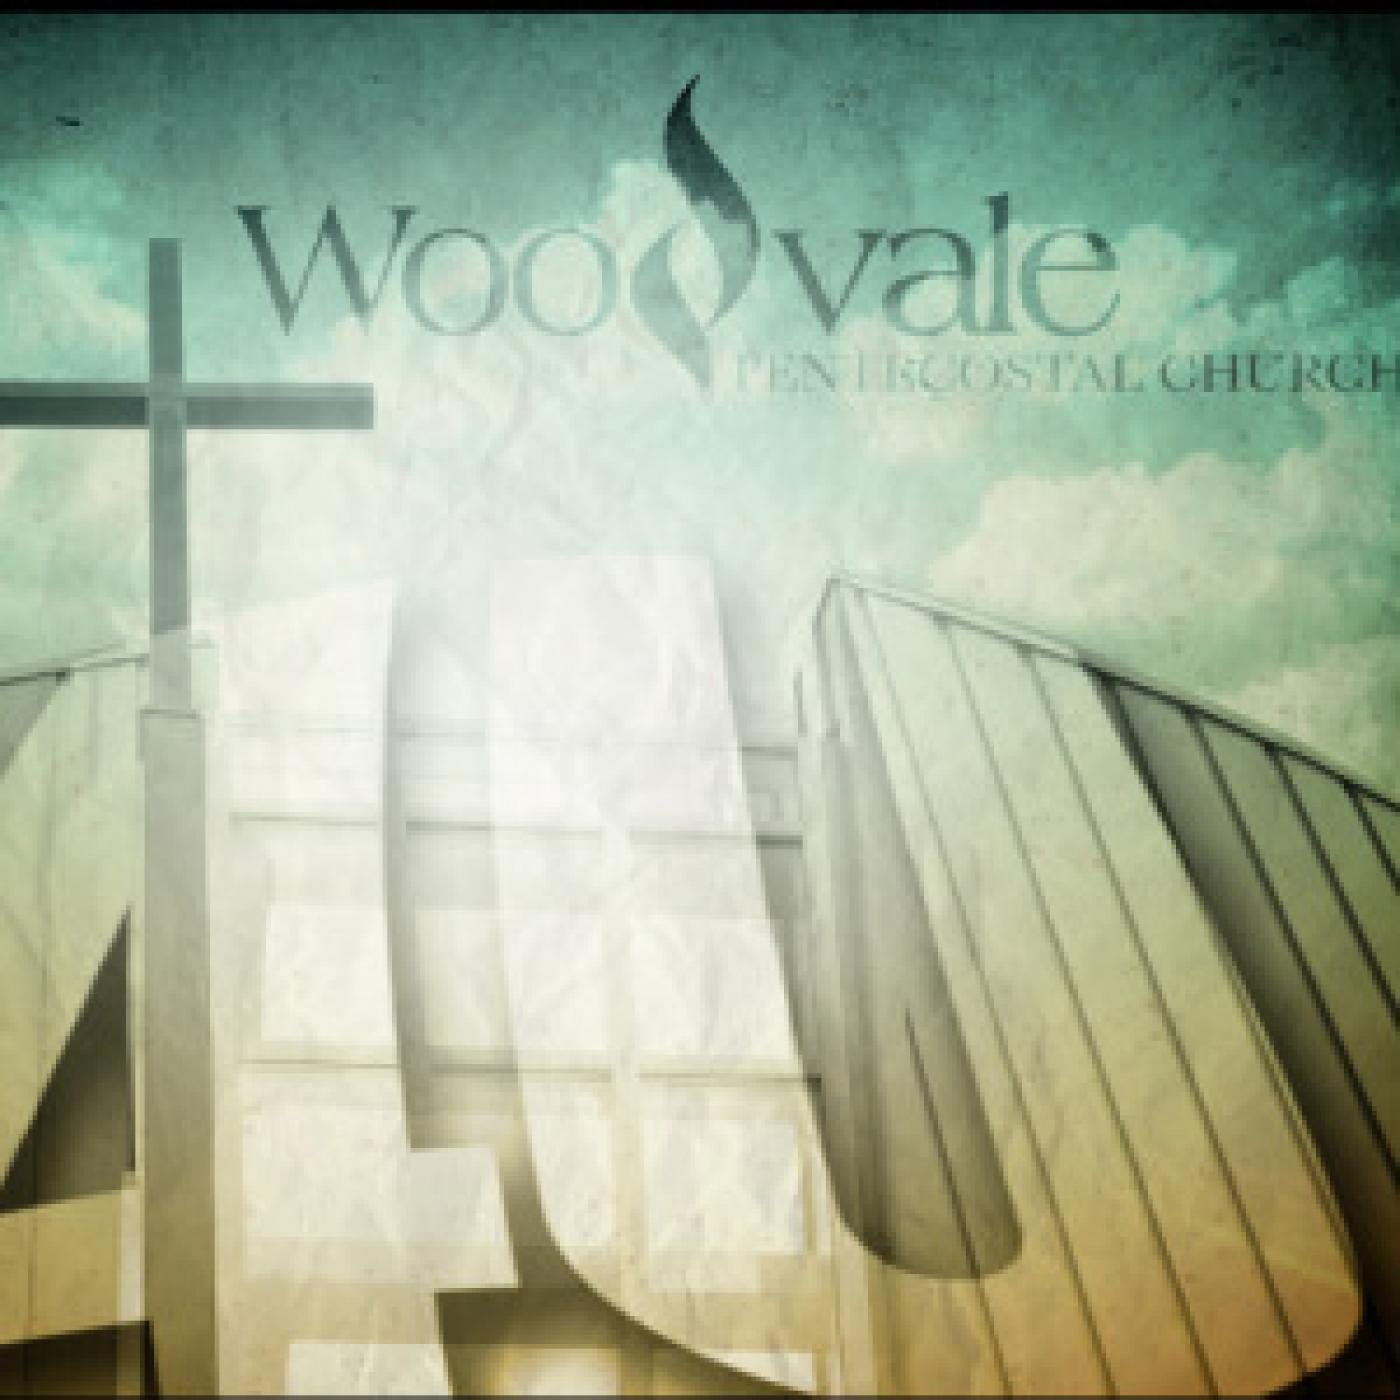 Woodvale Pentecostal Church